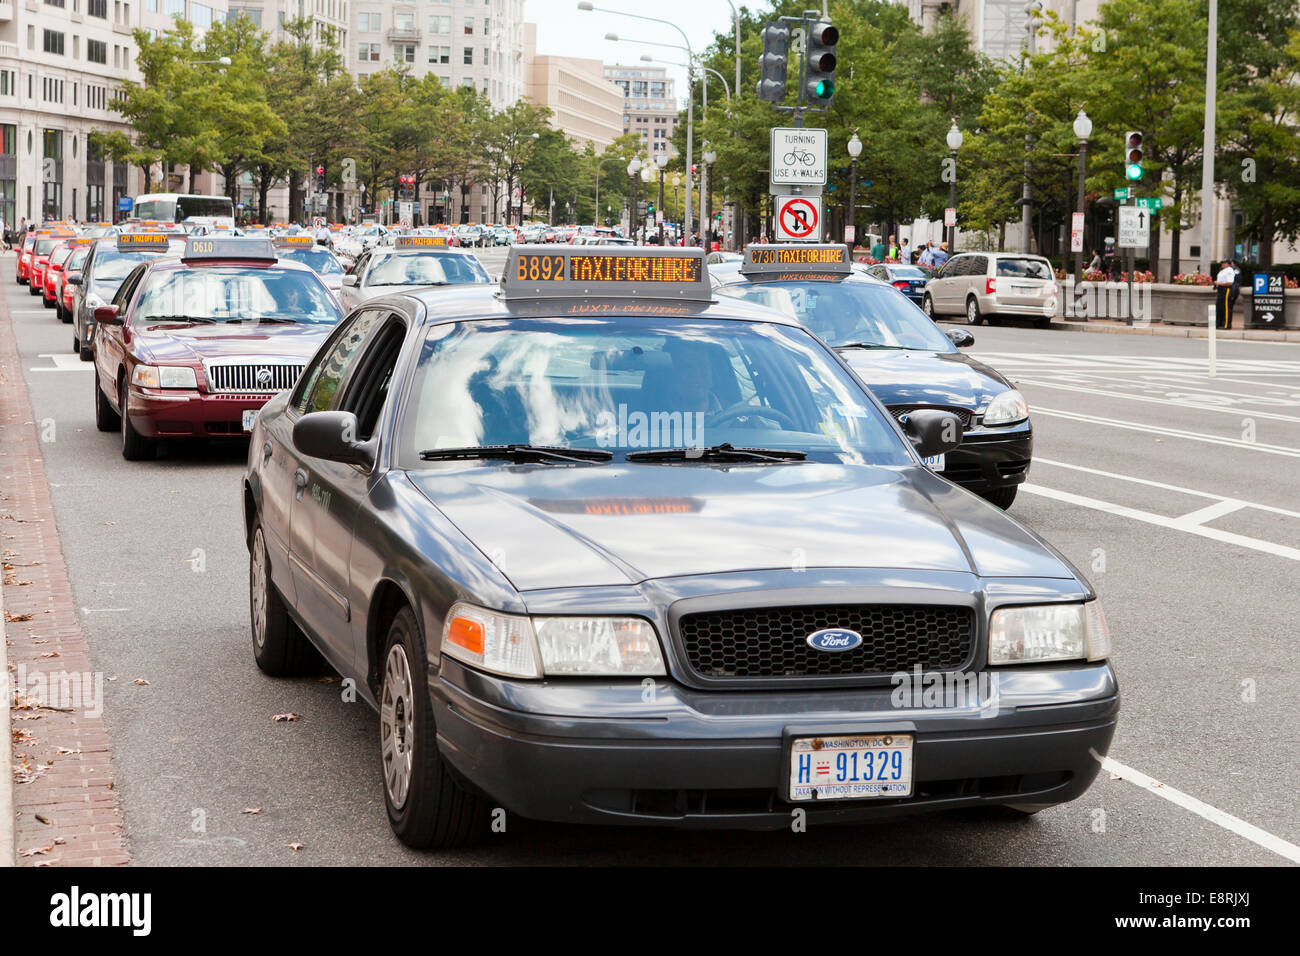 Taxis blocking traffic during taxi strike in front of District of Columbia City Hall - Washington, DC USA Stock Photo